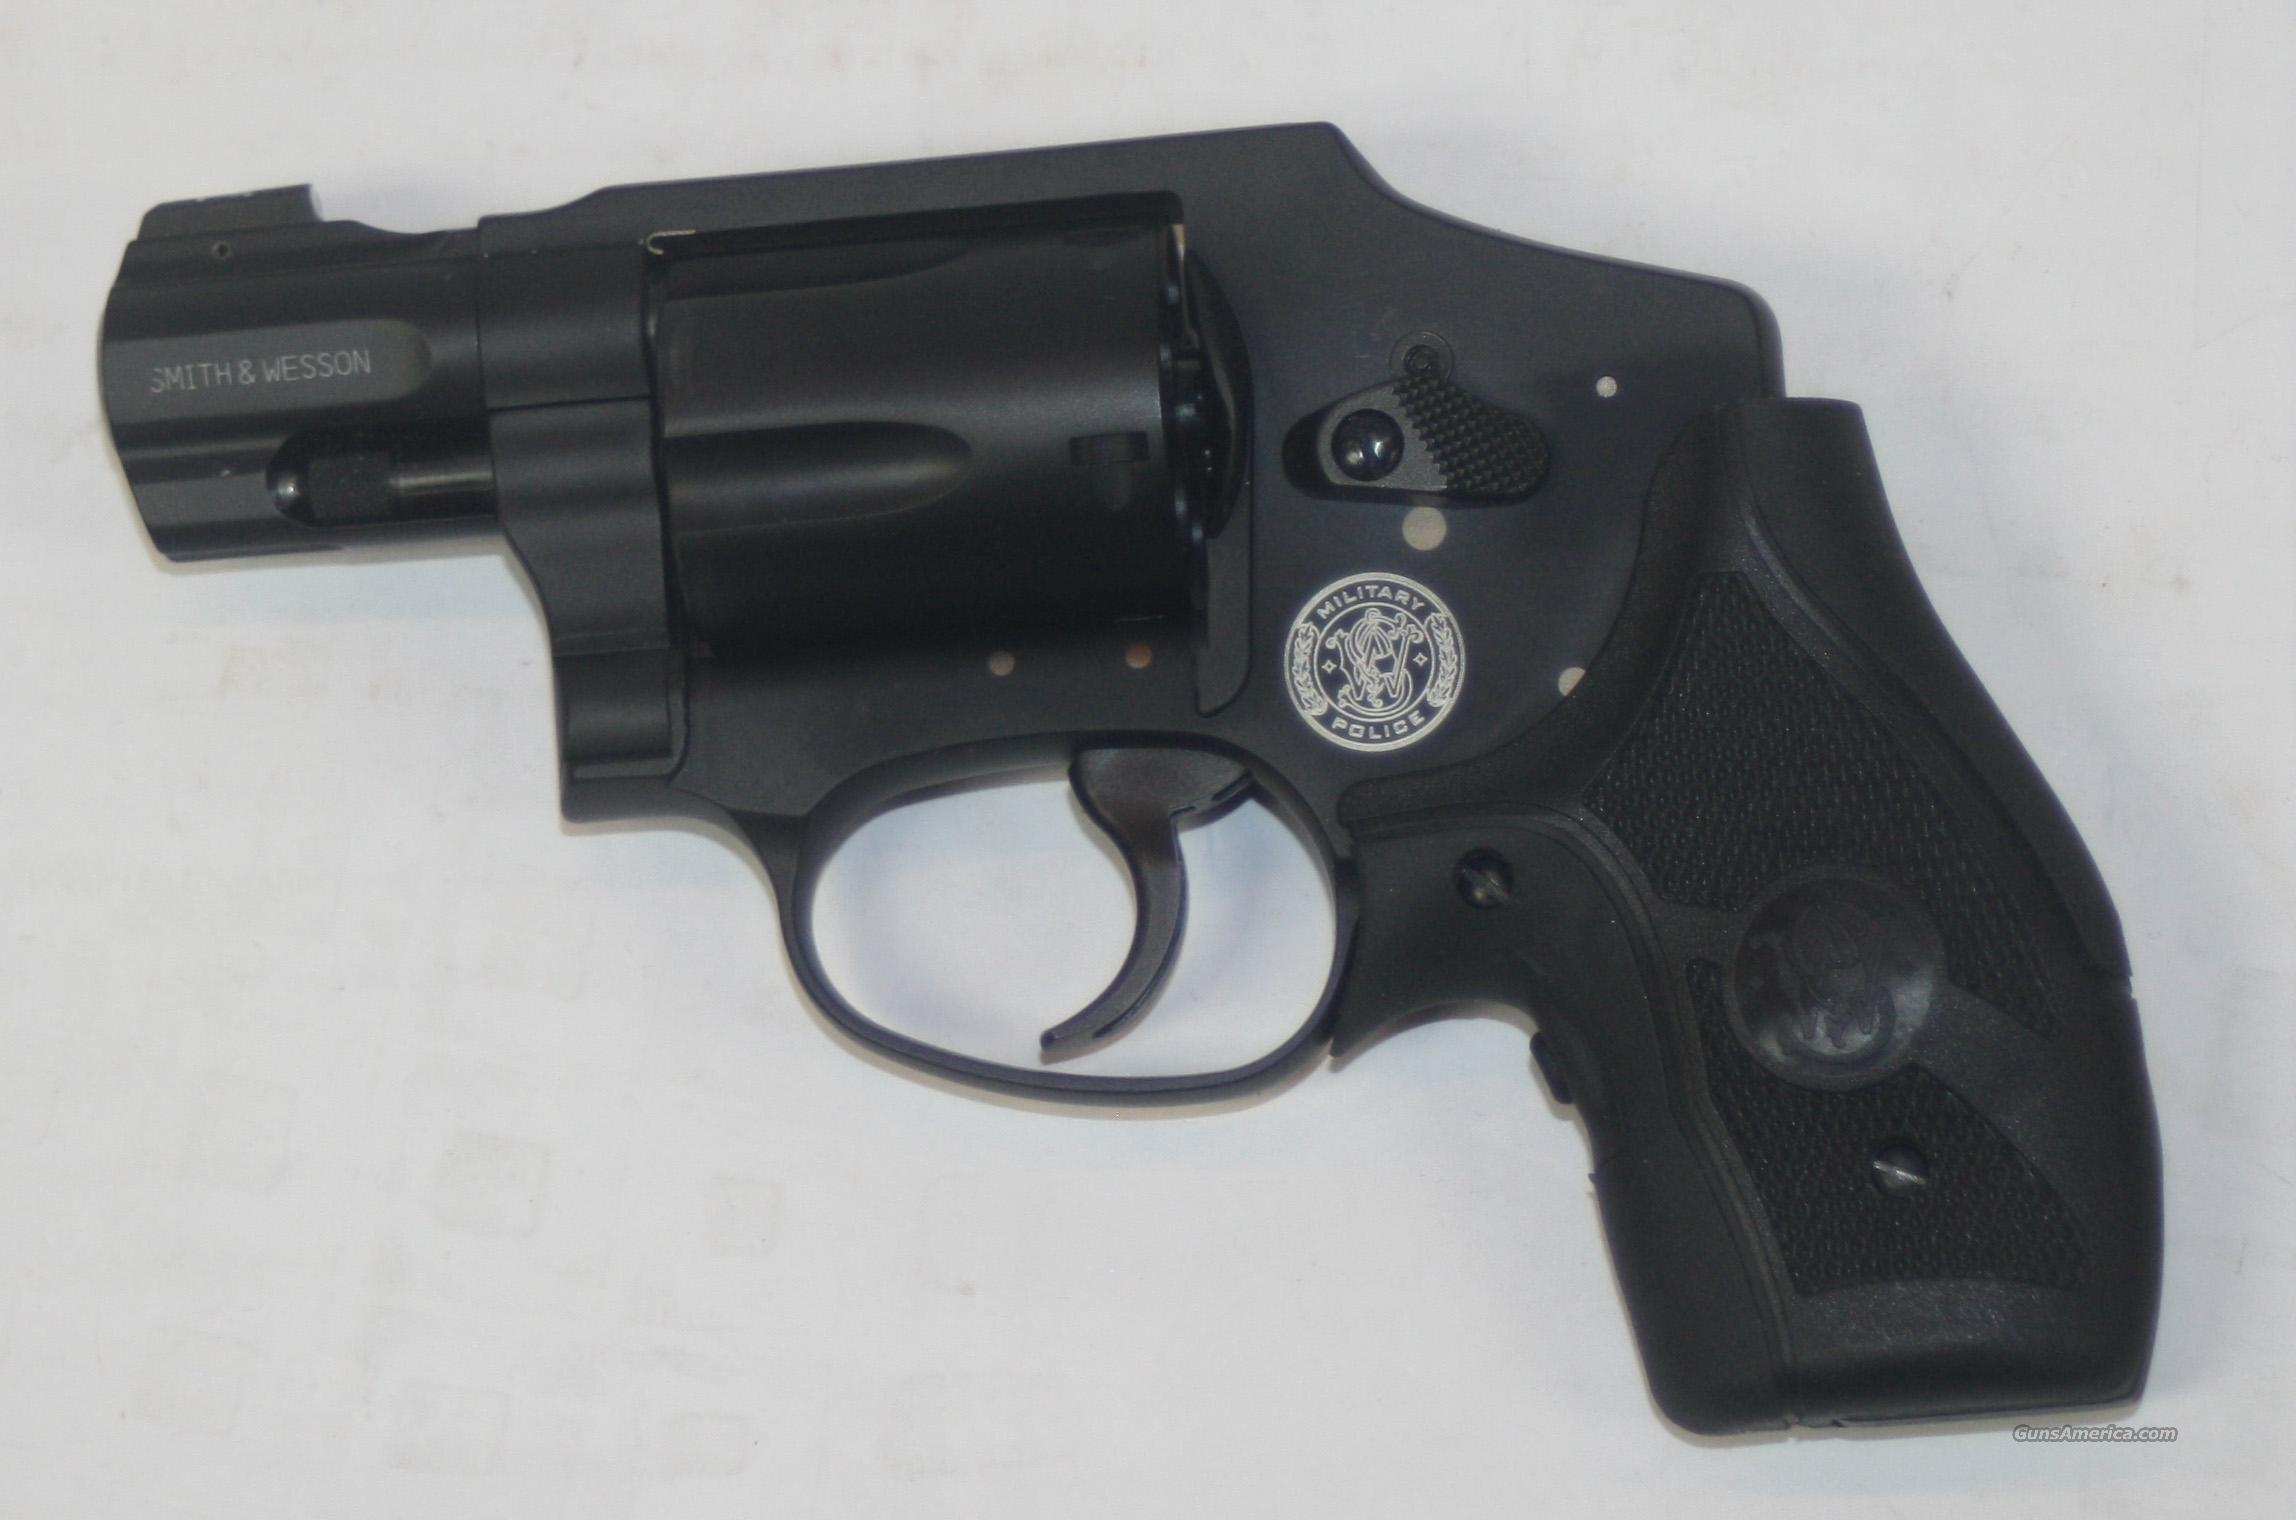 "SMITH & WESSON M&P 340 1.87"" 357 MAGNUM WITH CRIMSON TRACE LASER GRIPS NEW IN BOX  Guns > Pistols > Smith & Wesson Revolvers > Pocket Pistols"